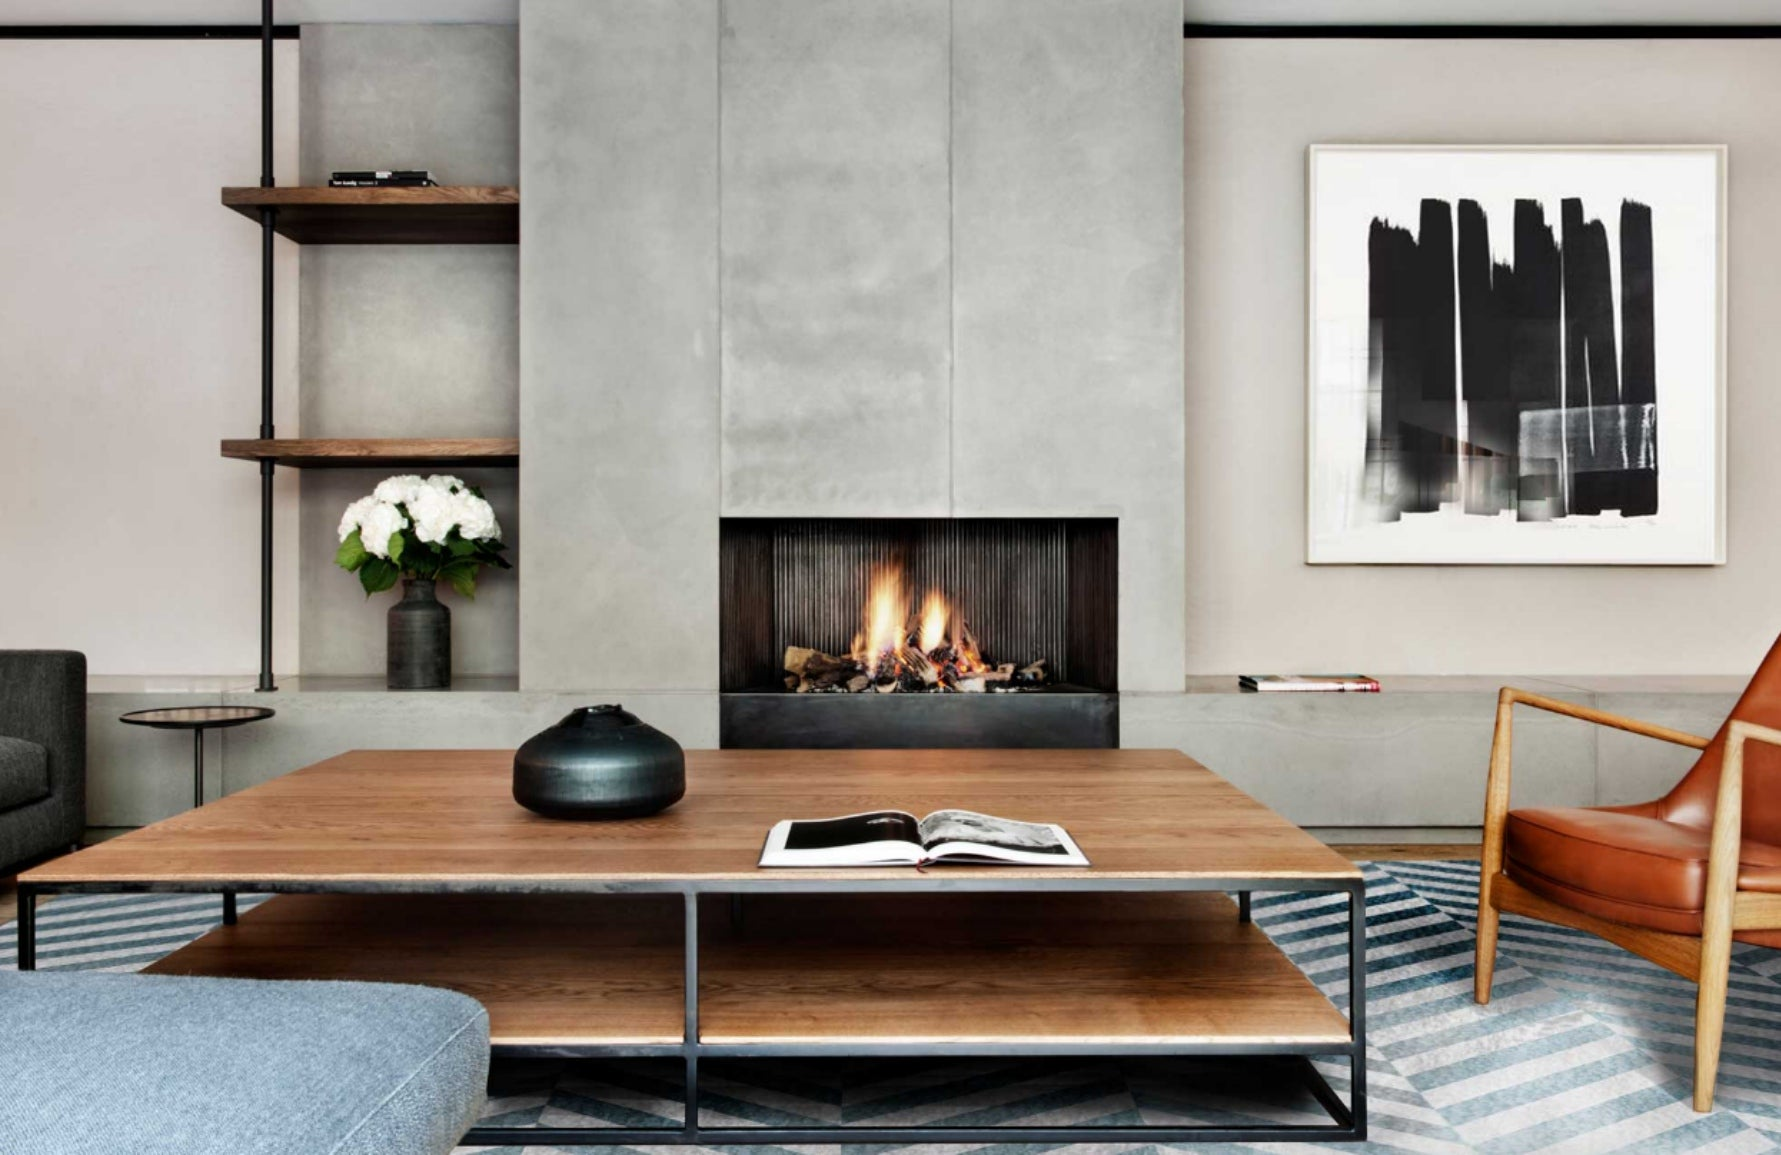 Importance of Sound | Audio Design | Living Room Interior by Alexander Waterworth | Read The Luxurist at LuxDeco.com